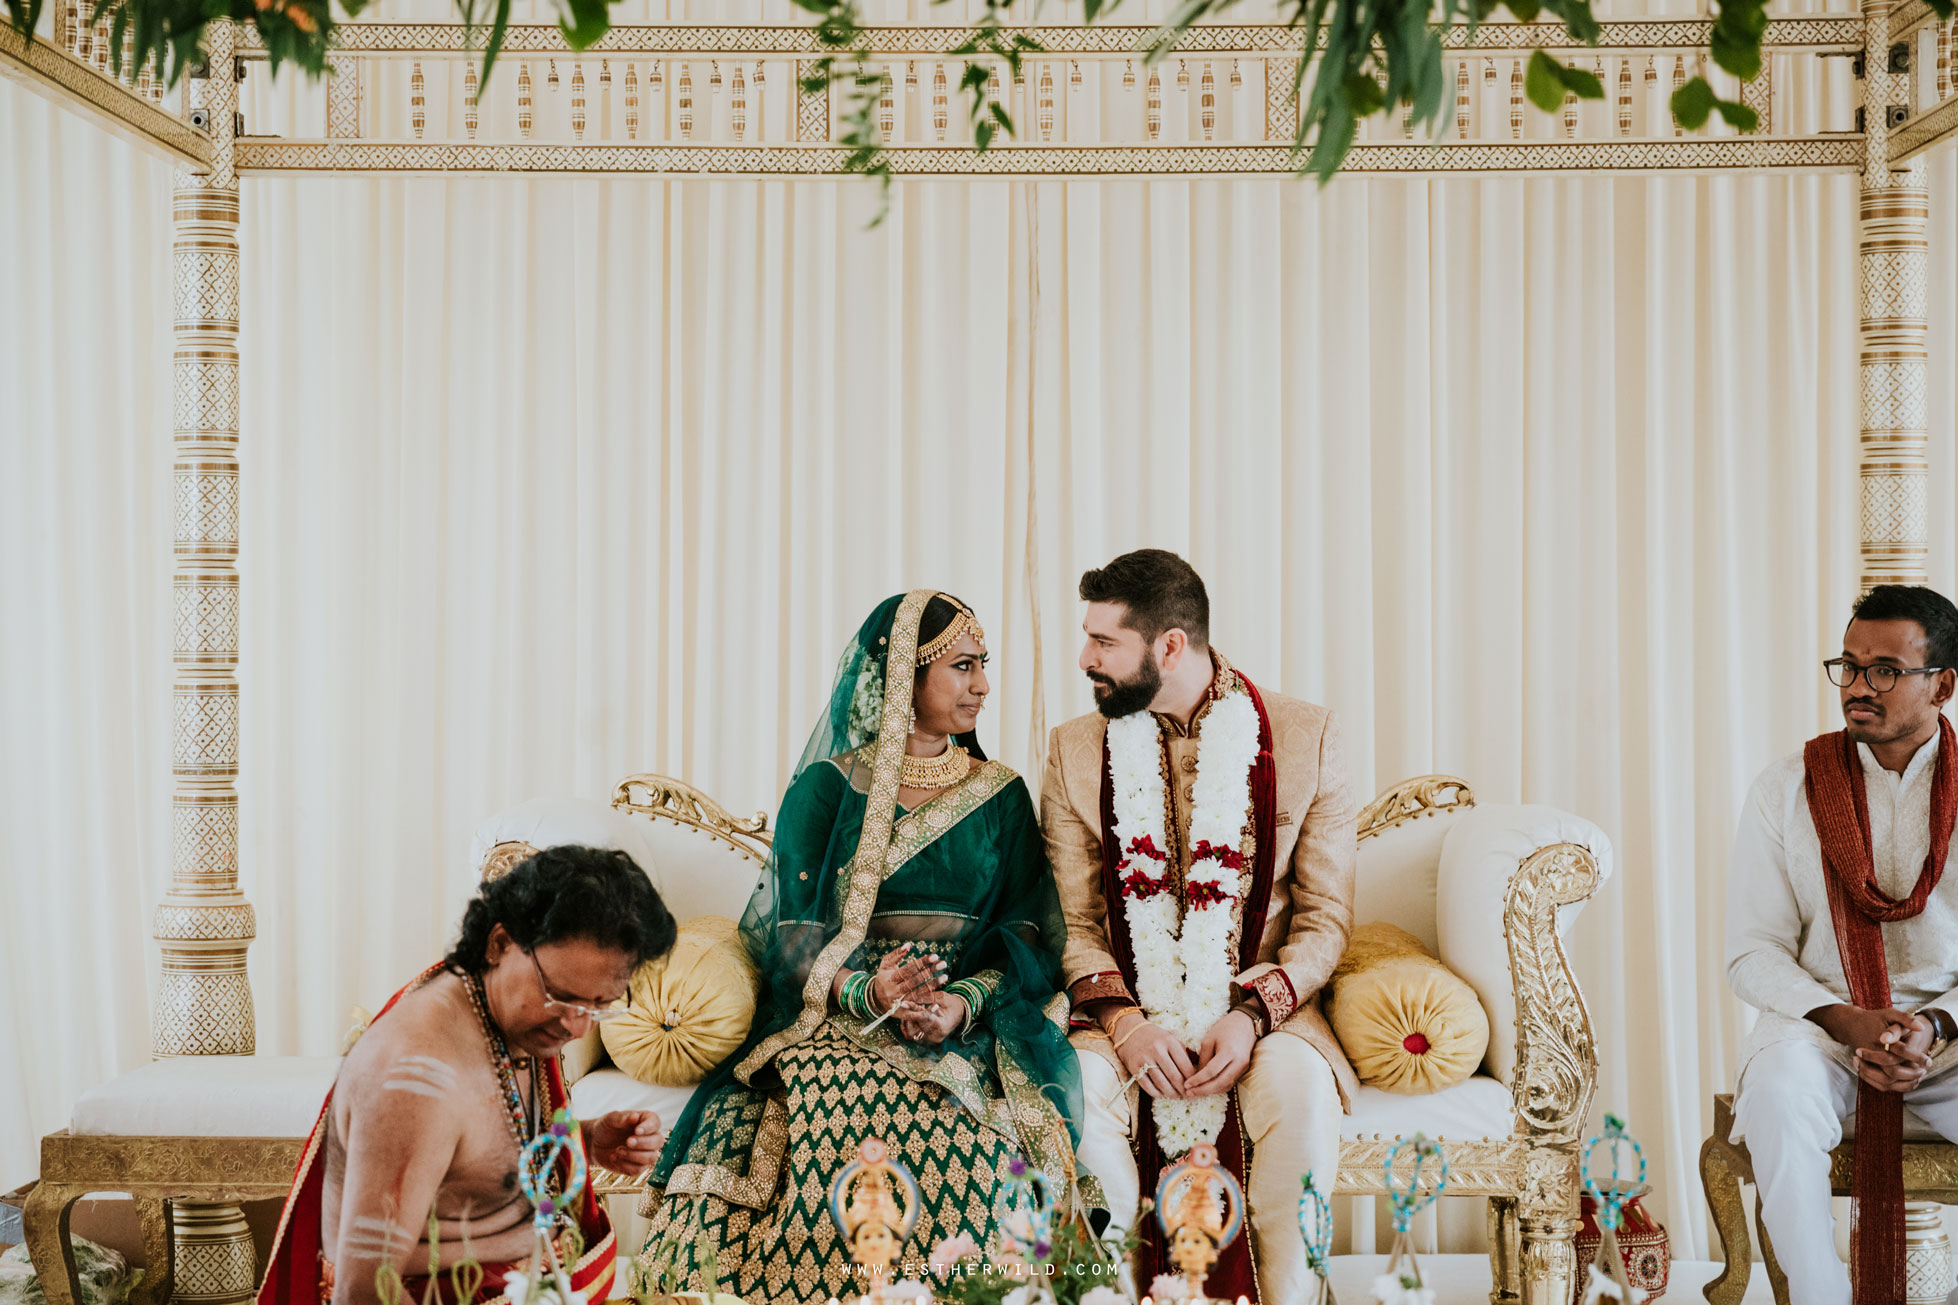 Northbrook_Park_Farnham_Surrey_London_Wedding_Hindu_Fusion_Esther_Wild_Photographer_IMG_3878.jpg